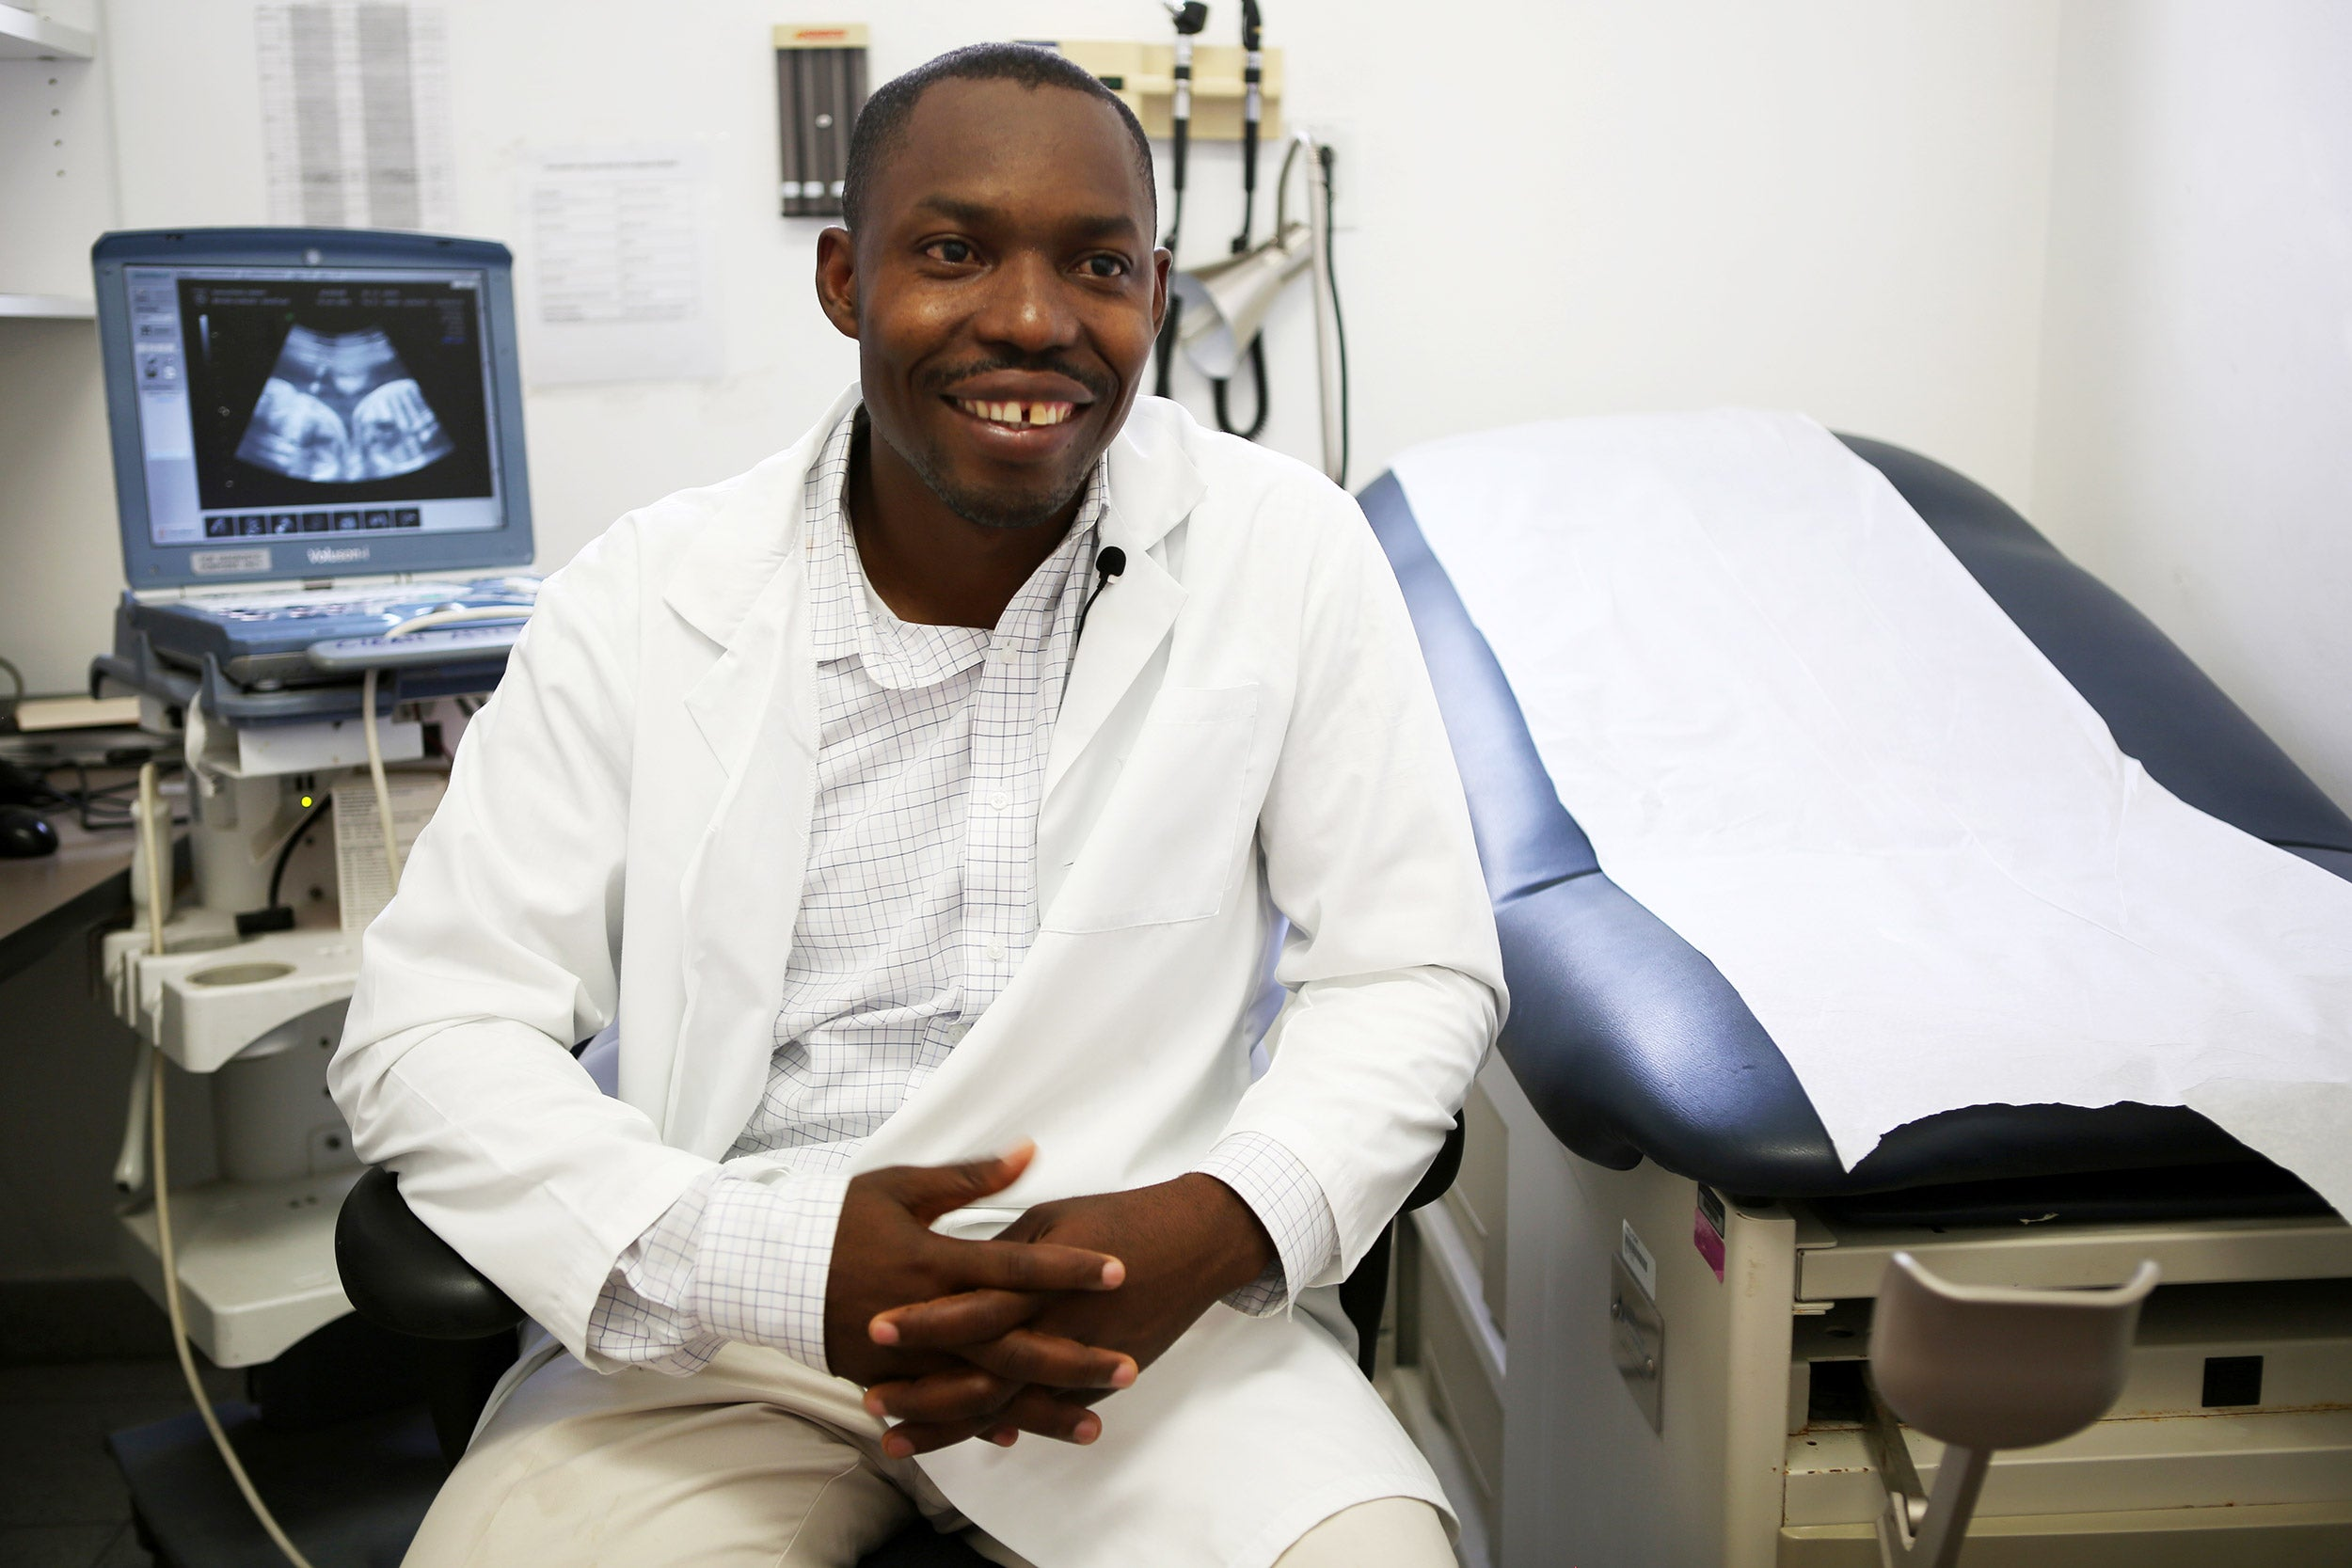 Christophe Millien, an OB/GYN from Haiti.